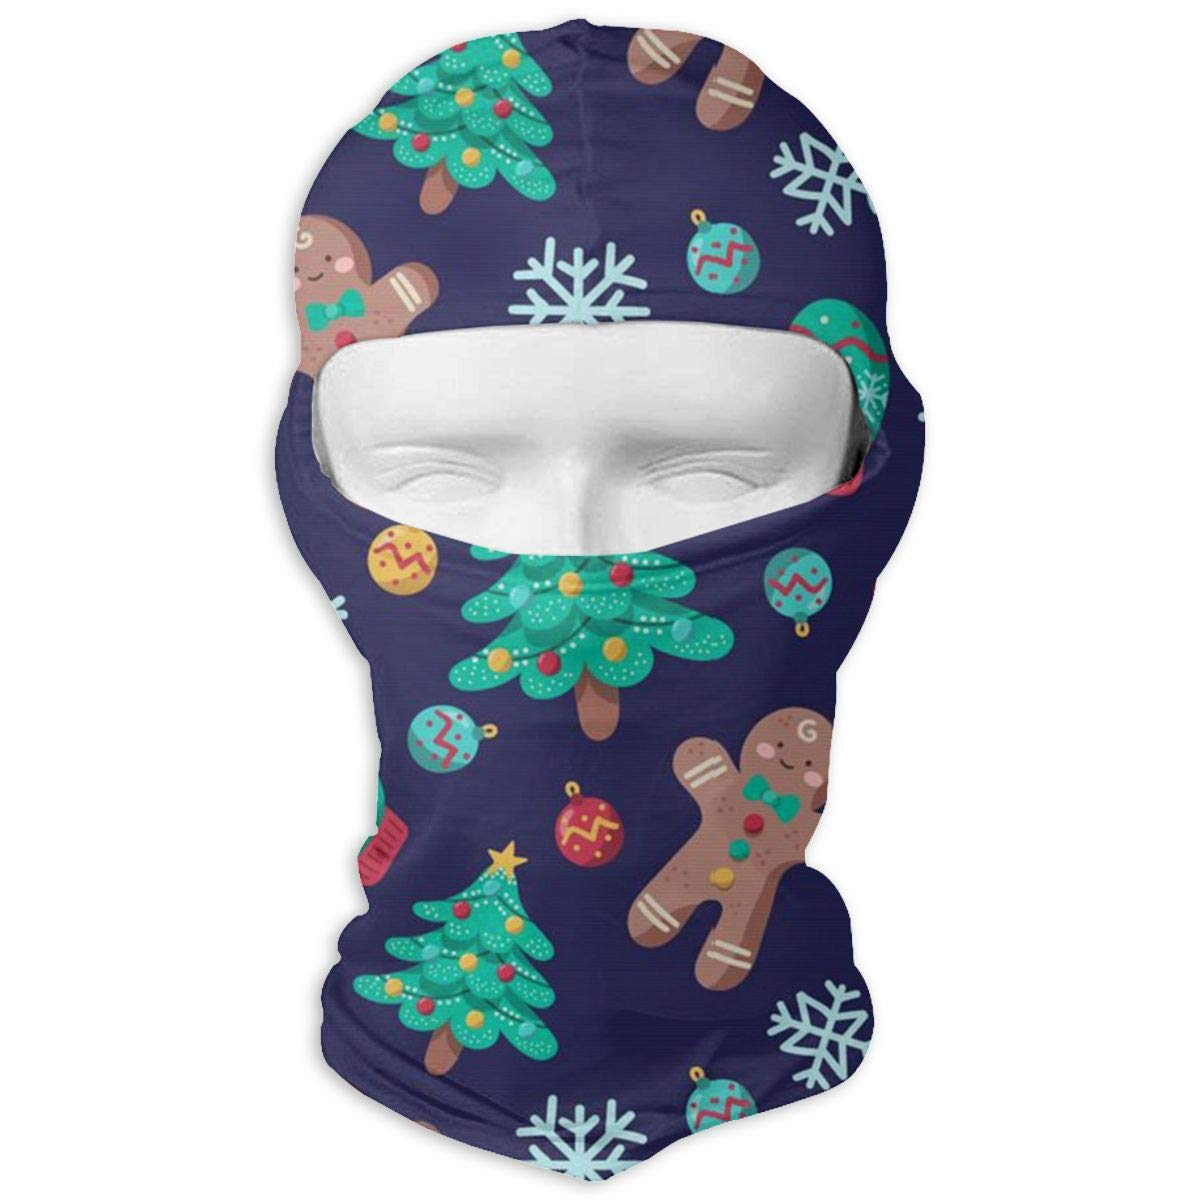 Gomop Ski Cap Cute Christmas Biscuit Full Face Mask Wind-Resistant Face Mask